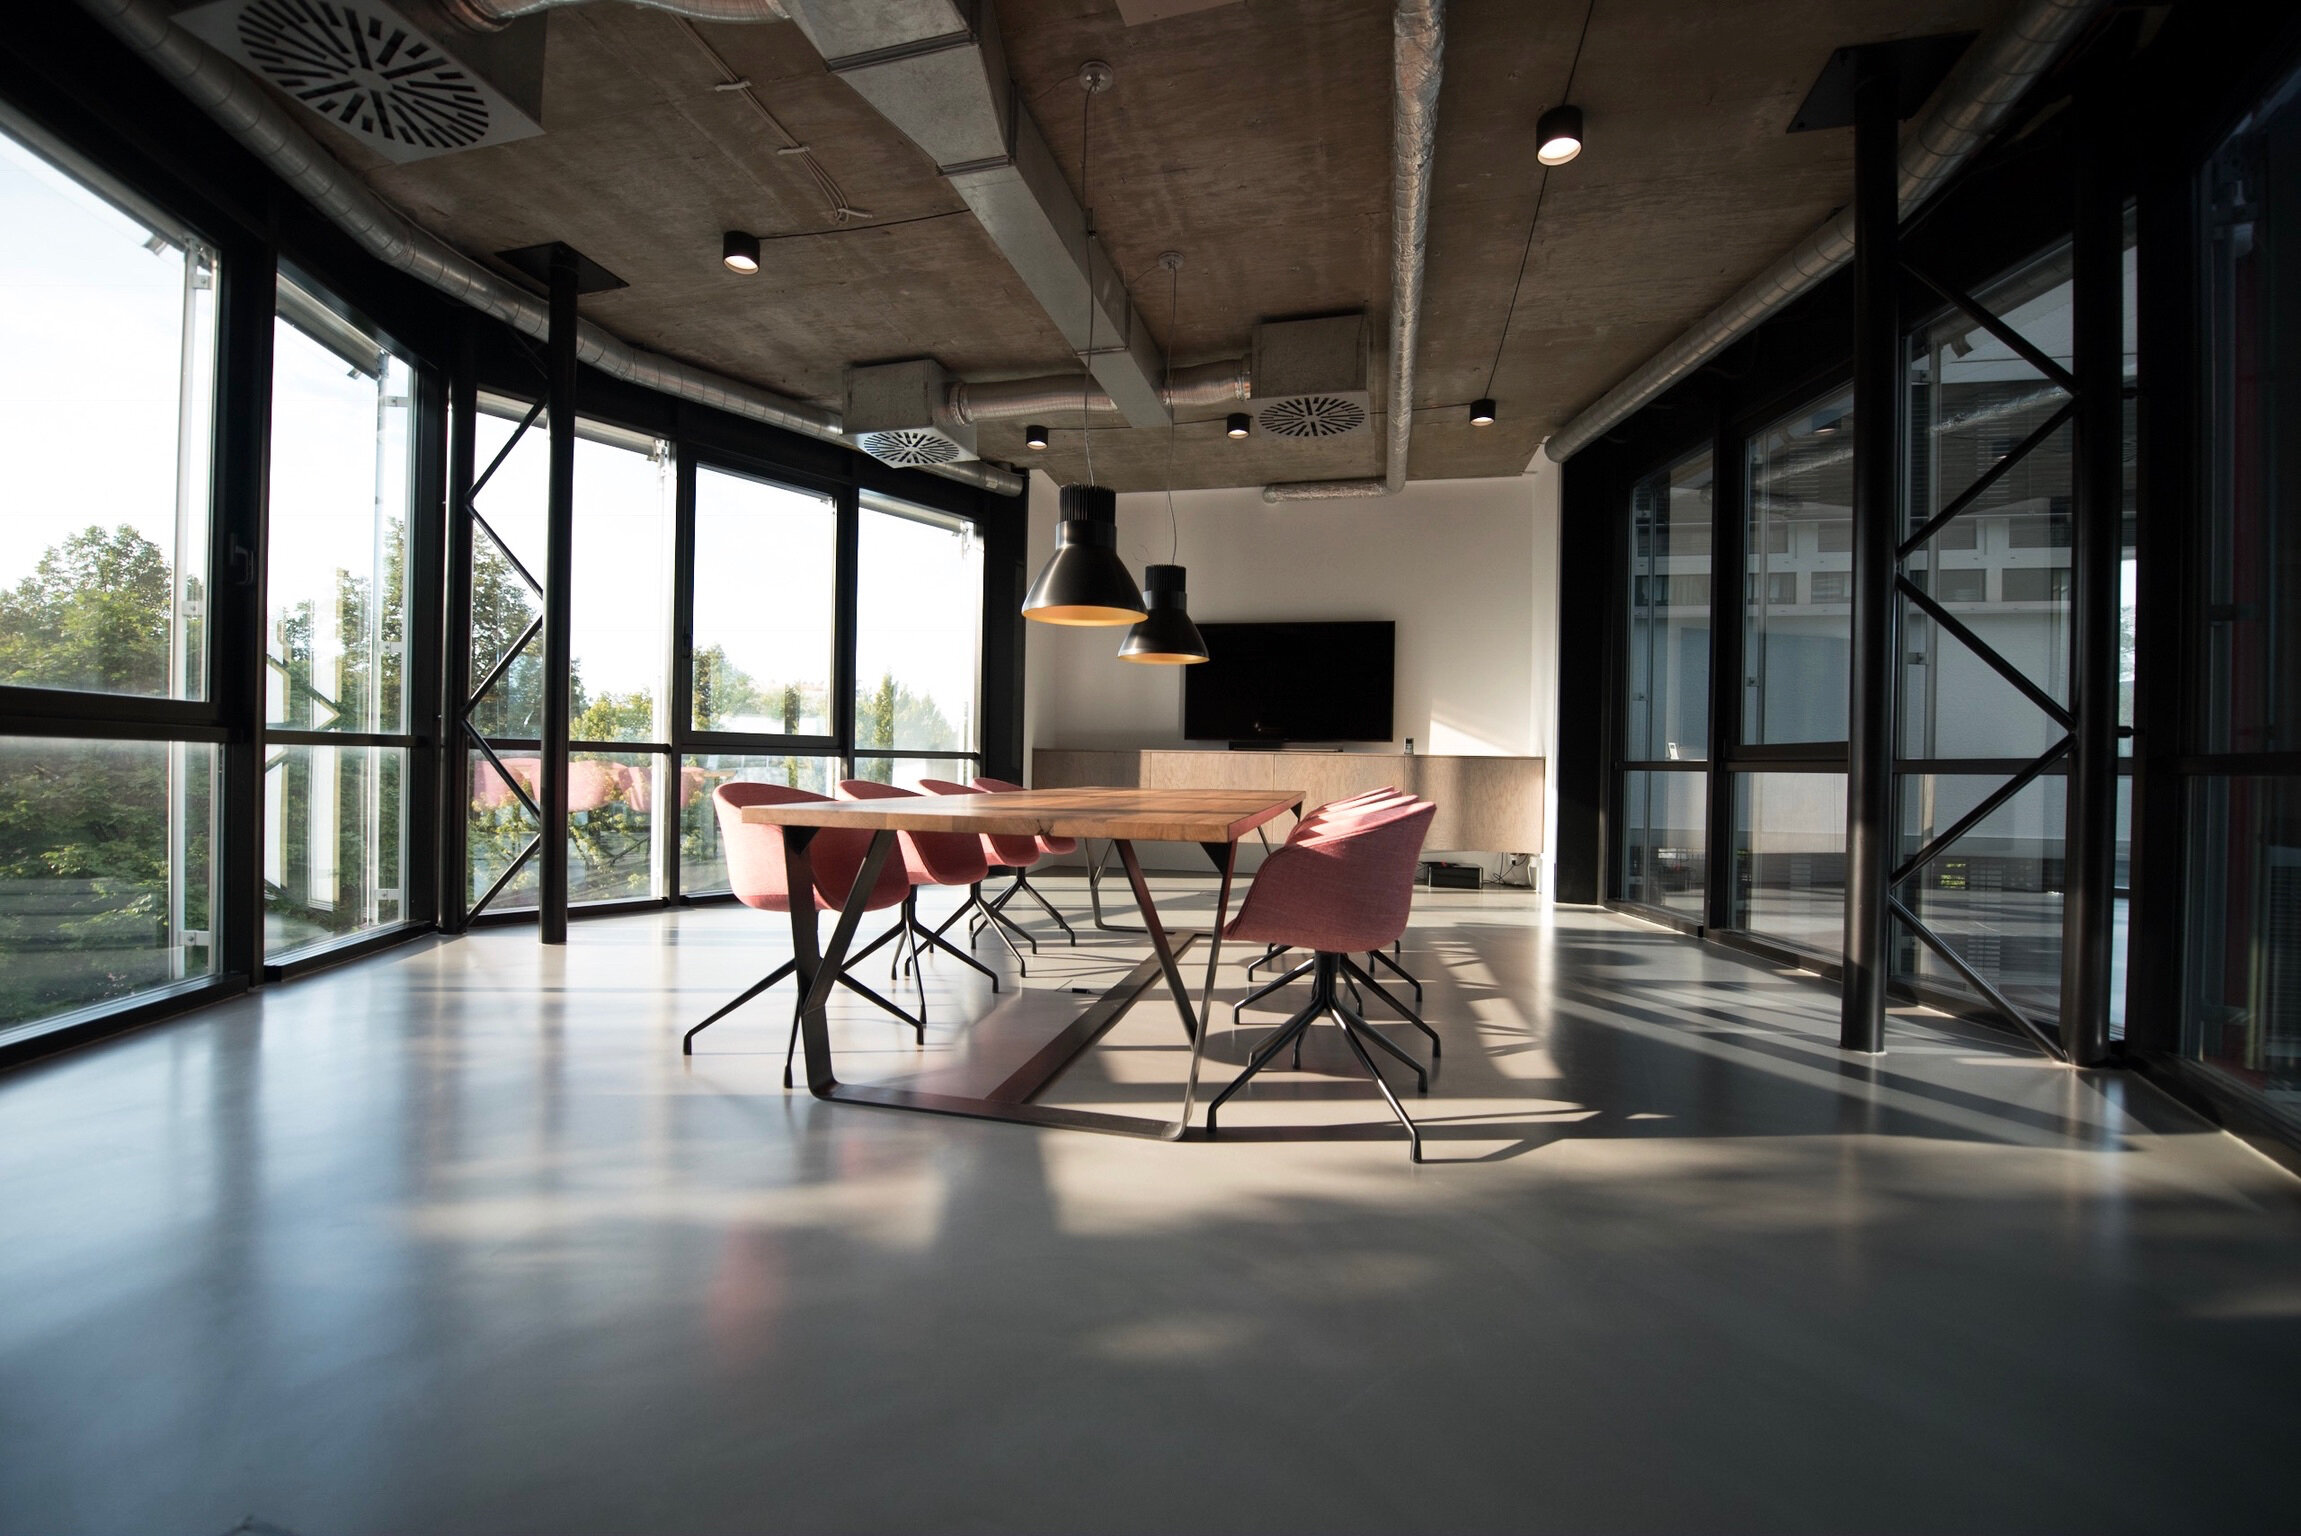 Industrial boardroom with lots of windows and pink chairs